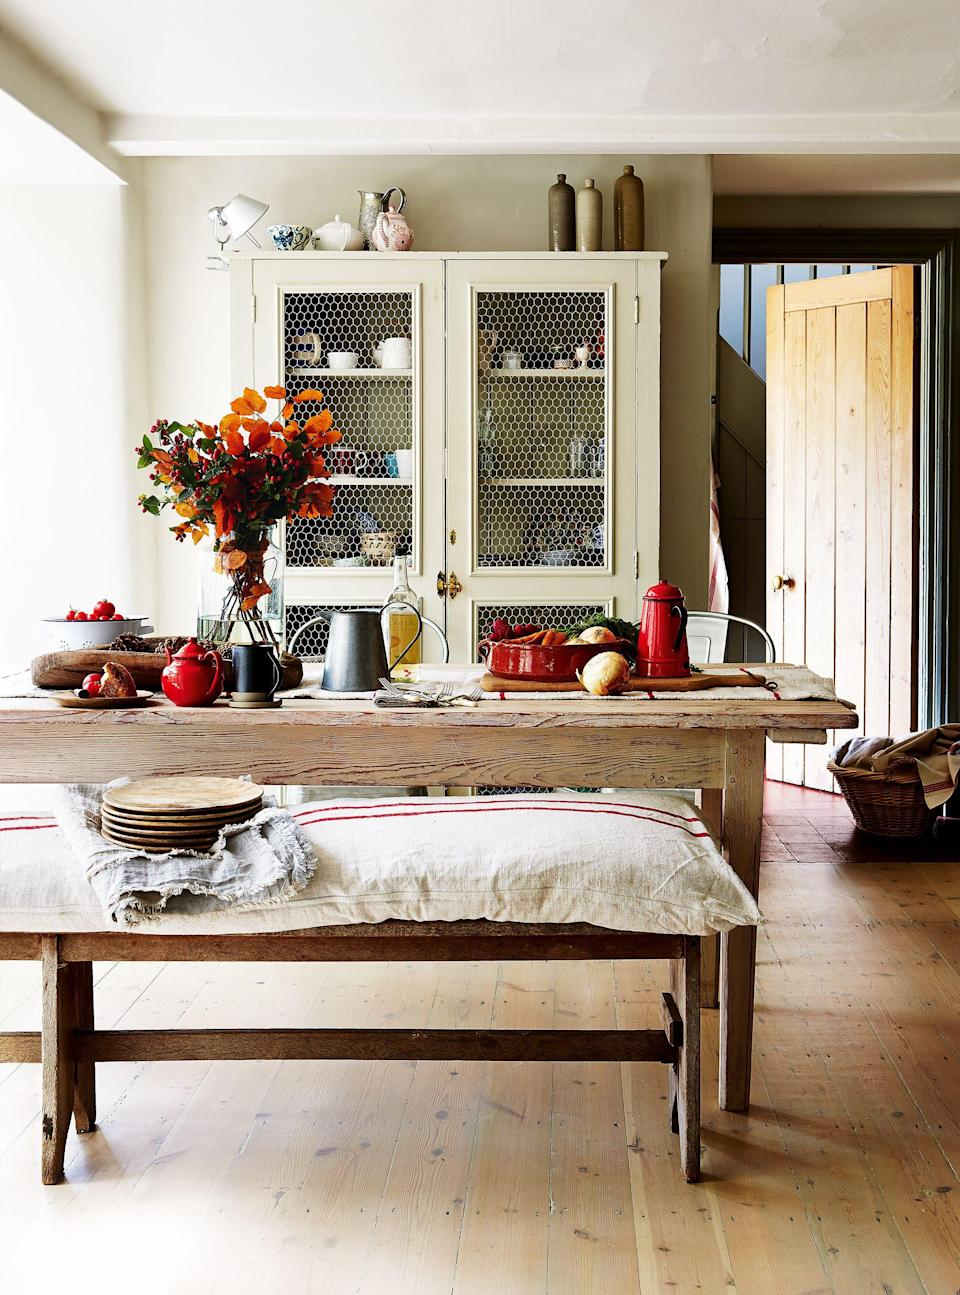 "<p>Deciding how to <a href=""https://www.housebeautiful.com/entertaining/holidays-celebrations/g2647/thanksgiving-decorations/"" rel=""nofollow noopener"" target=""_blank"" data-ylk=""slk:decorate for Thanksgiving"" class=""link rapid-noclick-resp"">decorate for Thanksgiving</a> is one thing, but deciding <em>which color</em><em>s</em> to use in is a task in and of itself. But choosing a Thanksgiving color palette will make every <a href=""https://www.housebeautiful.com/entertaining/table-decor/g1535/fall-table-decorating-ideas/"" rel=""nofollow noopener"" target=""_blank"" data-ylk=""slk:decorating"" class=""link rapid-noclick-resp"">decorating</a> task easier, from the front door to the <a href=""https://www.housebeautiful.com/entertaining/holidays-celebrations/g2684/thanksgiving-centerpieces/"" rel=""nofollow noopener"" target=""_blank"" data-ylk=""slk:centerpiece"" class=""link rapid-noclick-resp"">centerpiece</a> and mantel. You could opt for the standard brown, yellow, orange, and red, but c'mon—where's the fun in that? If you want to mix it up this year, try these gorgeous combos that integrate the classics alongside a few totally unexpected new hues. </p>"